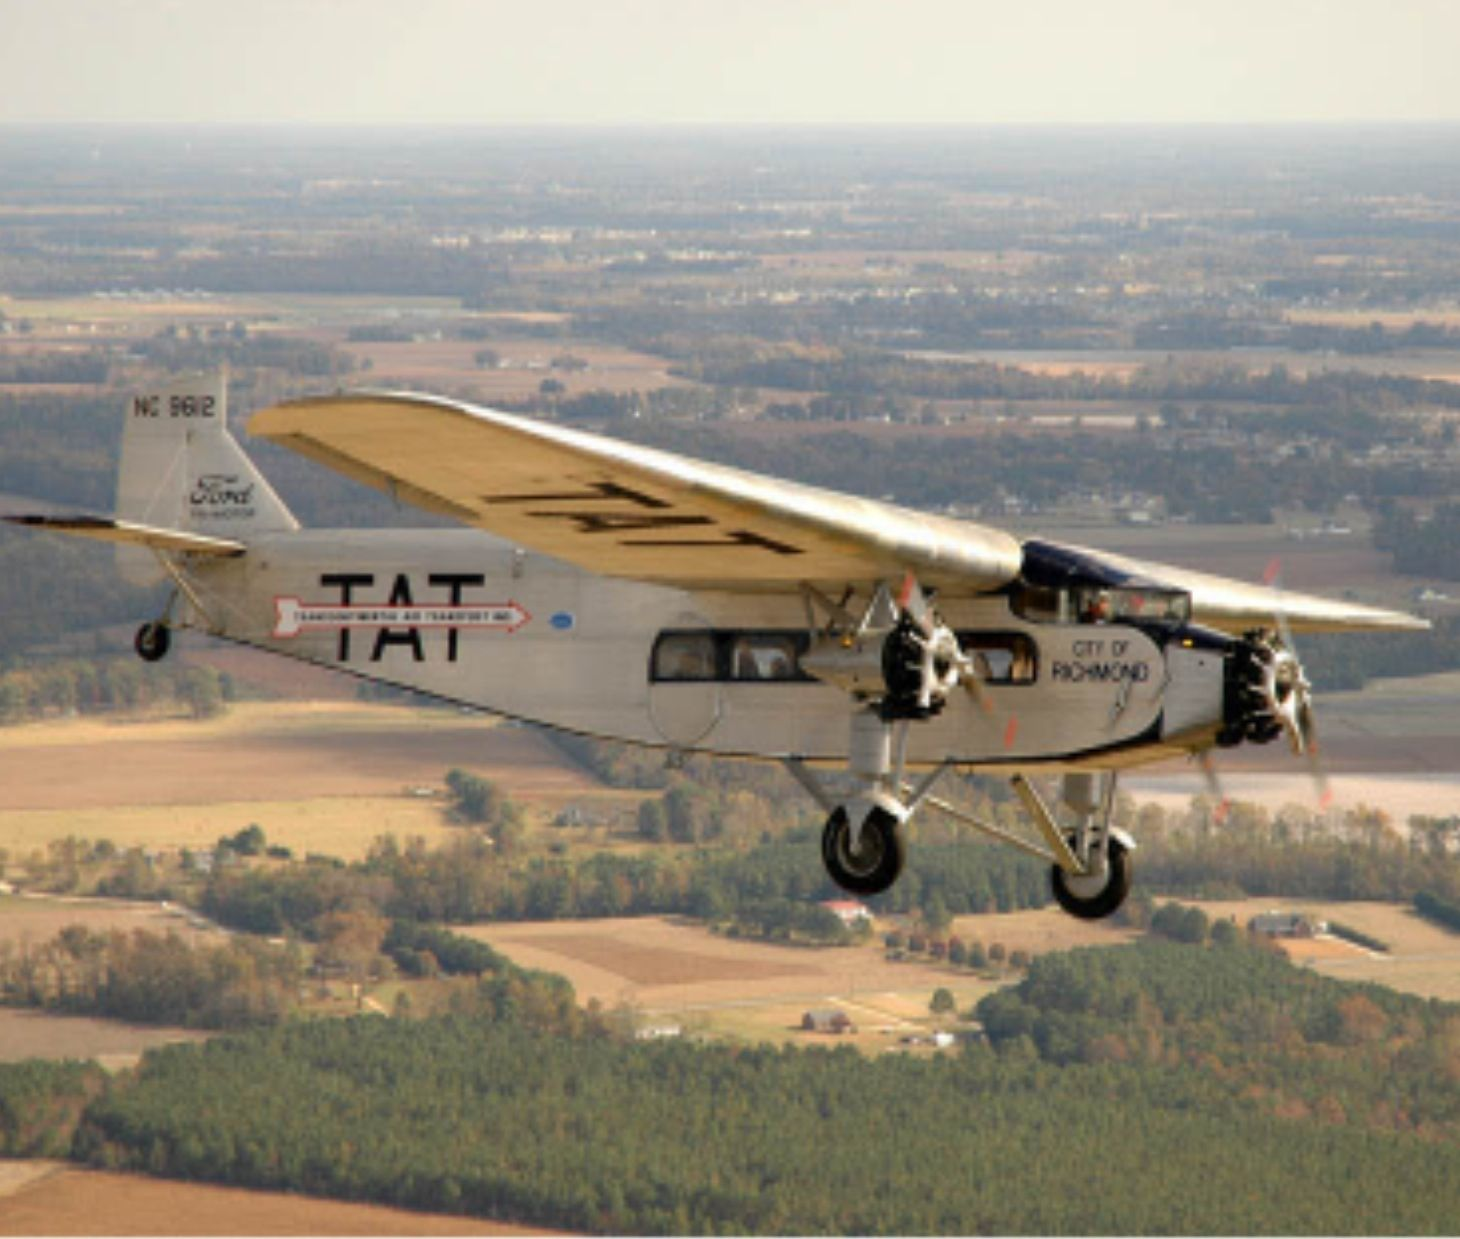 Ford trimotor city of richmond after multiyear